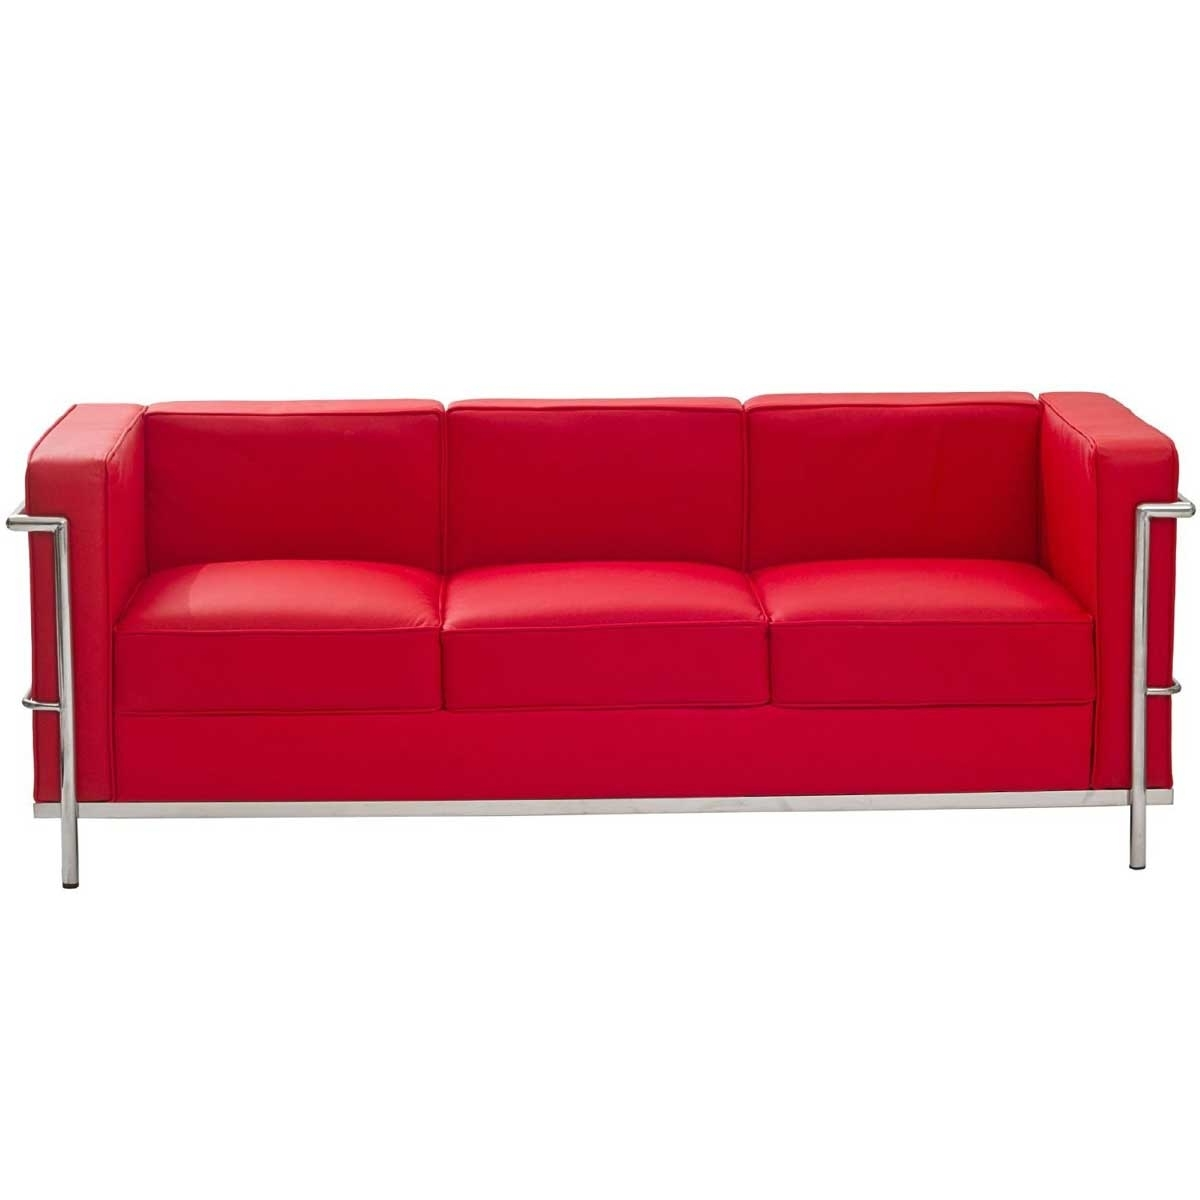 Interior : Red Sofa And Loveseat Leather Interior Furniture For Favorite Red Sofa Chairs (View 8 of 15)